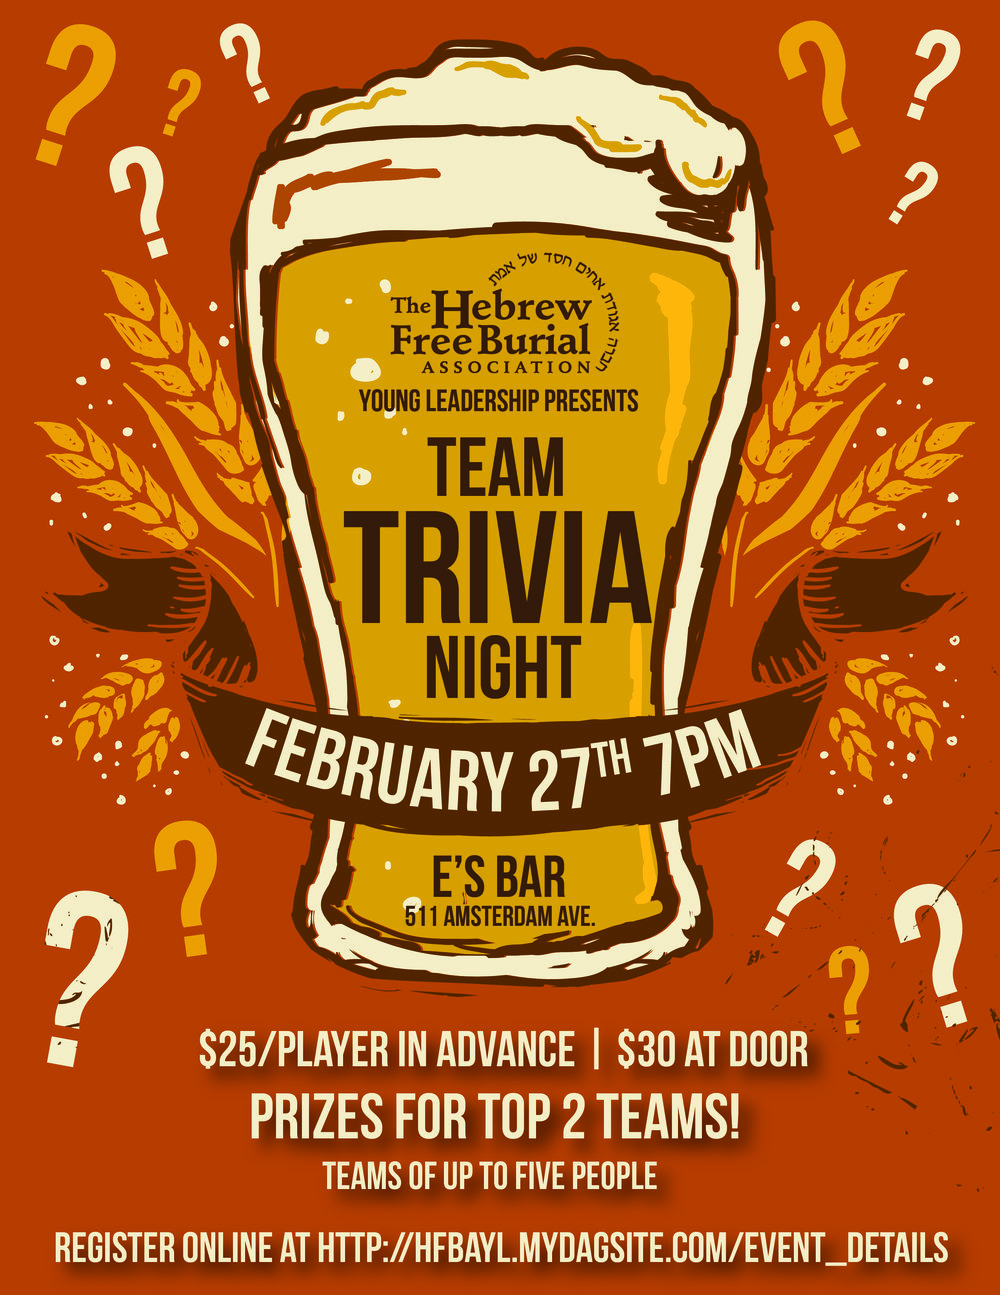 Trivia Night - Event Poster, Hebrew Free Burial Association